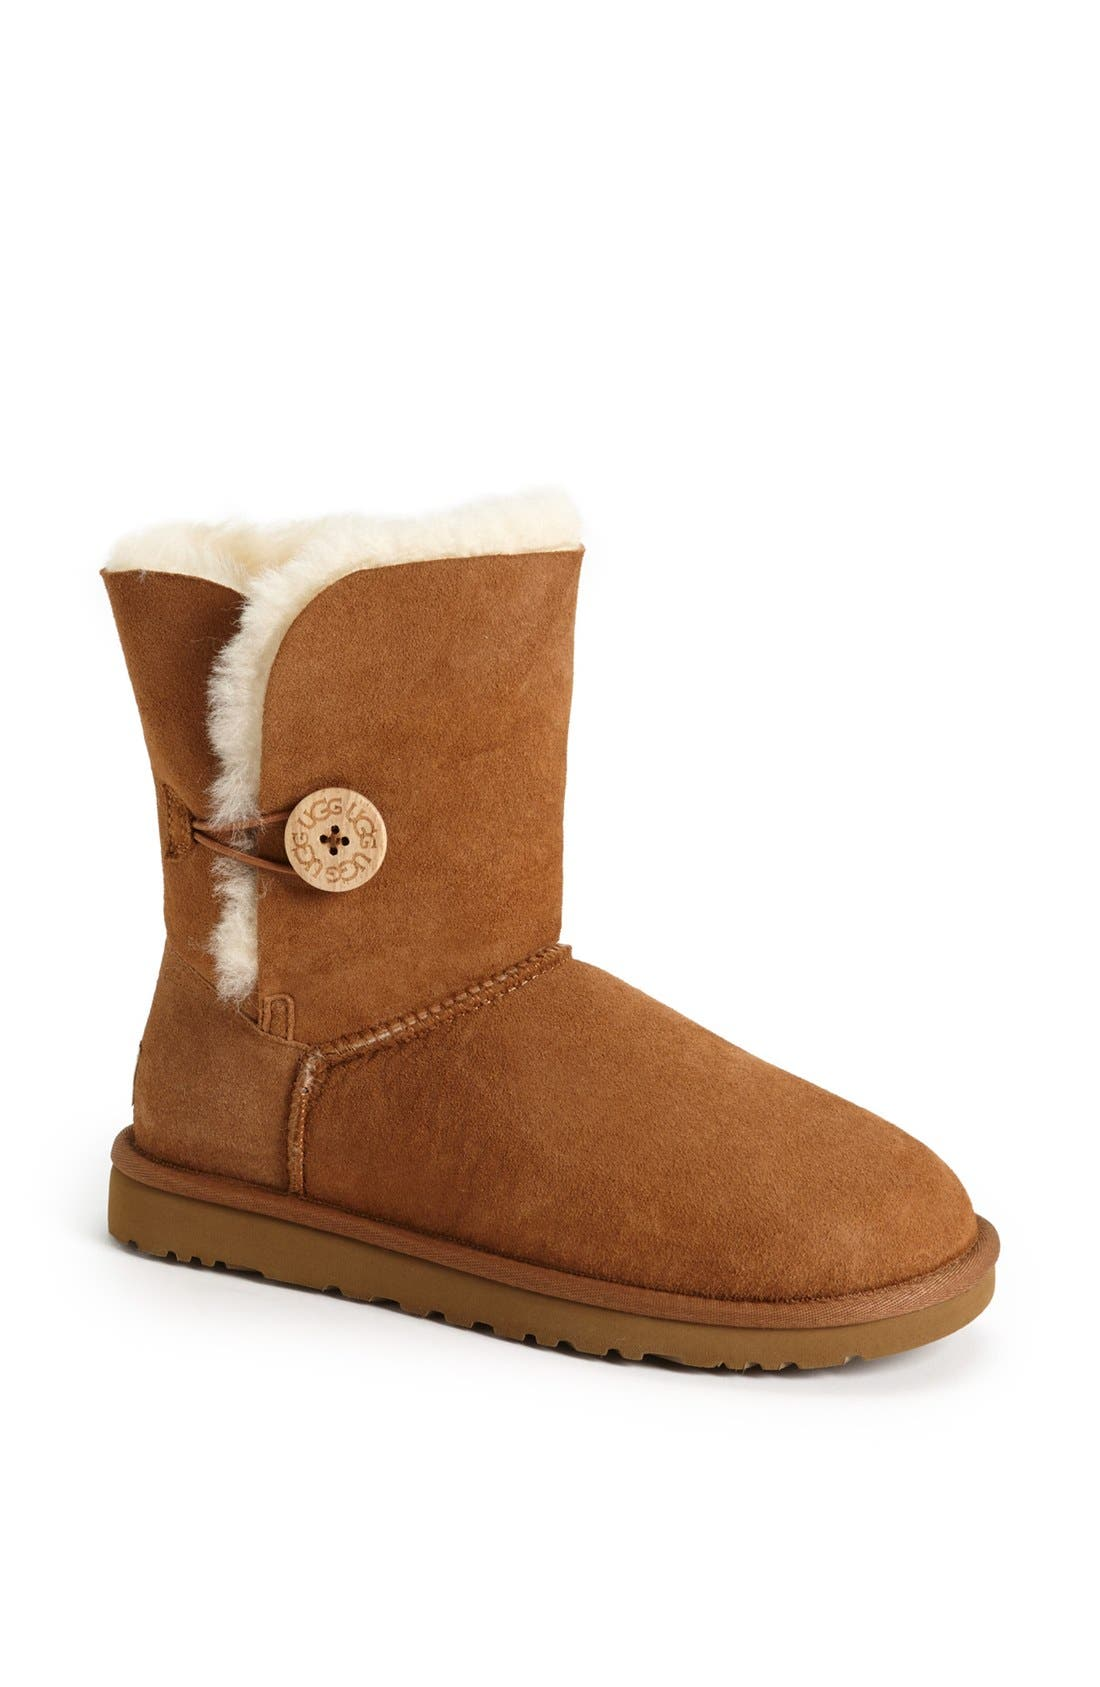 Main Image - UGG® 'Bailey Button' Boot (Women)